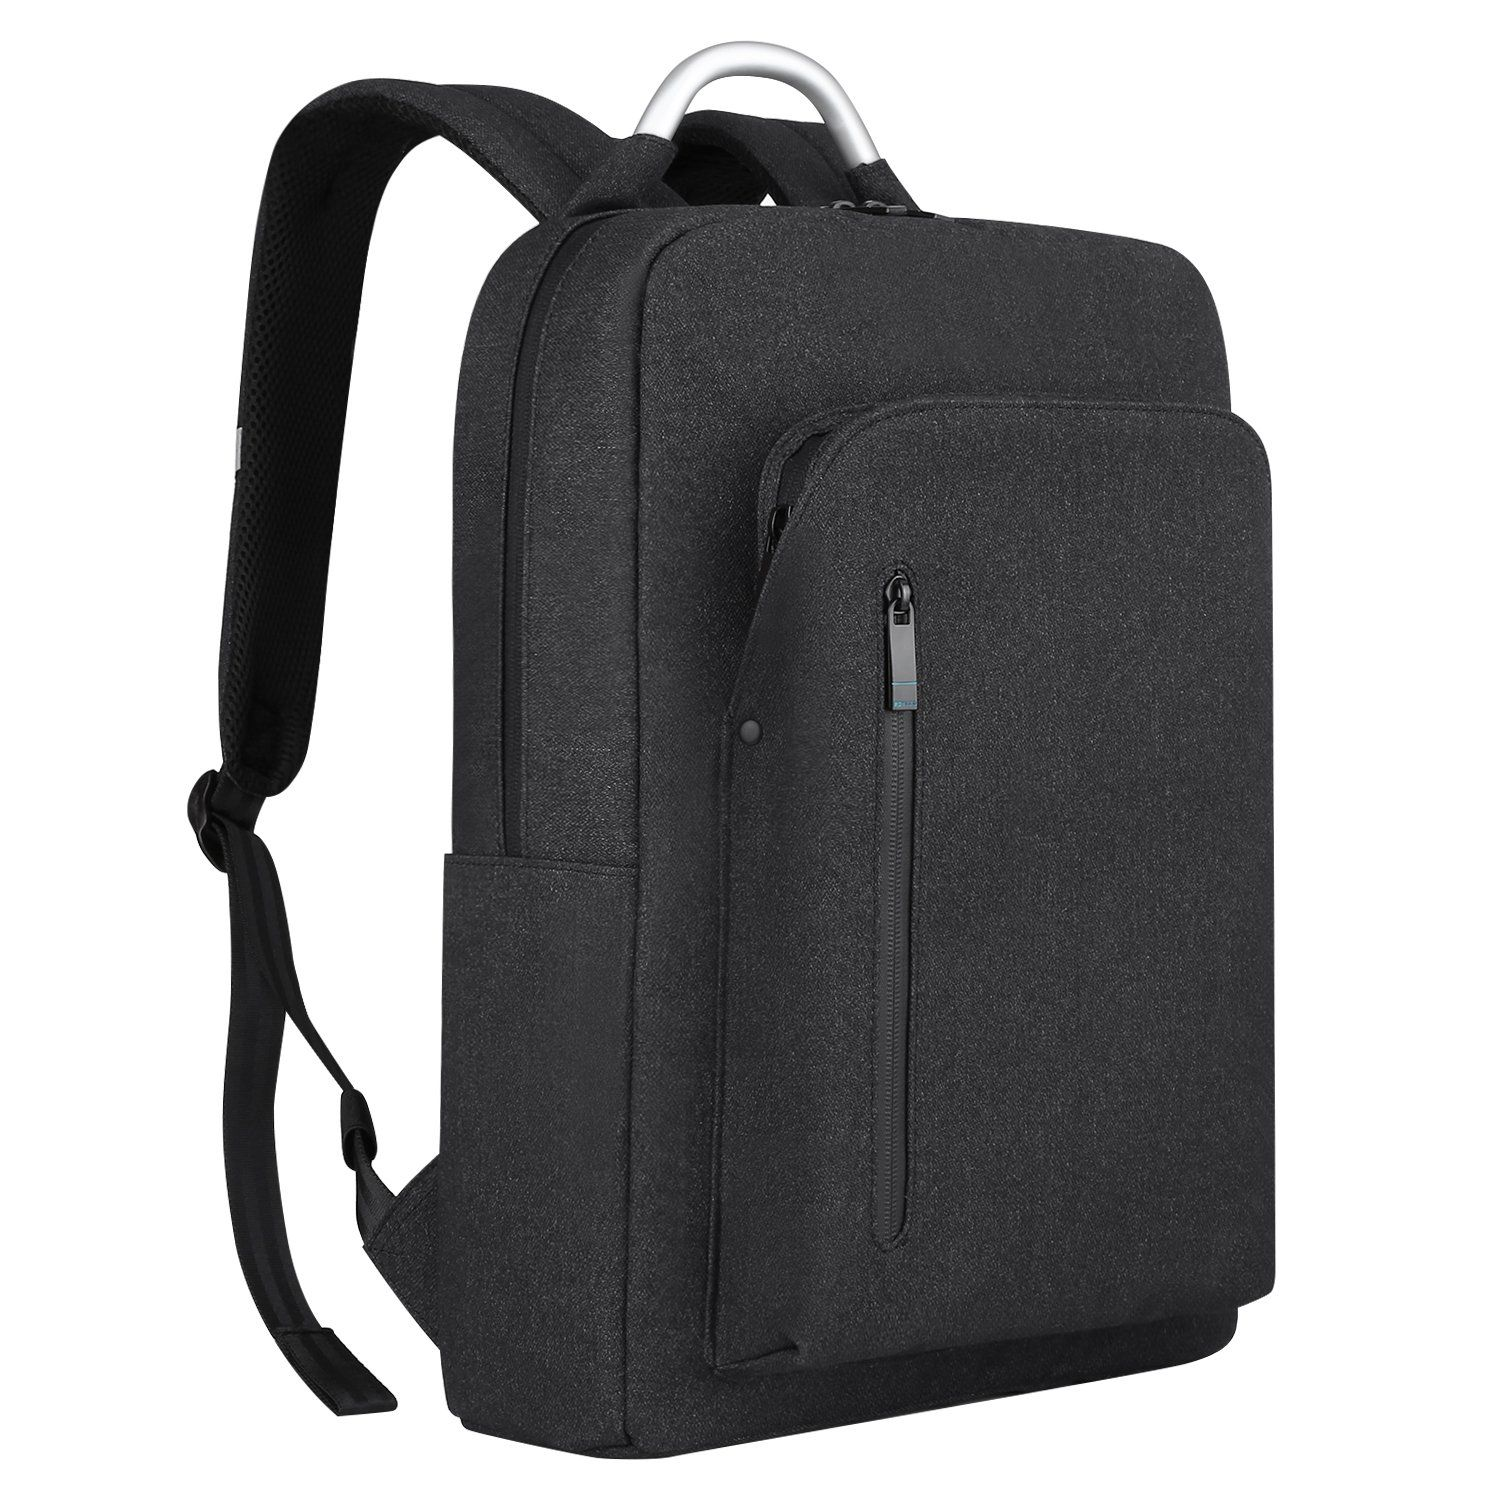 a636923d7da4 REYLEO Backpack Business Laptop Backpack Water Resistant School Backpack  Casual Daypack Fits up to inch Notebook Computer for Travel Work College(Dark  Grey)